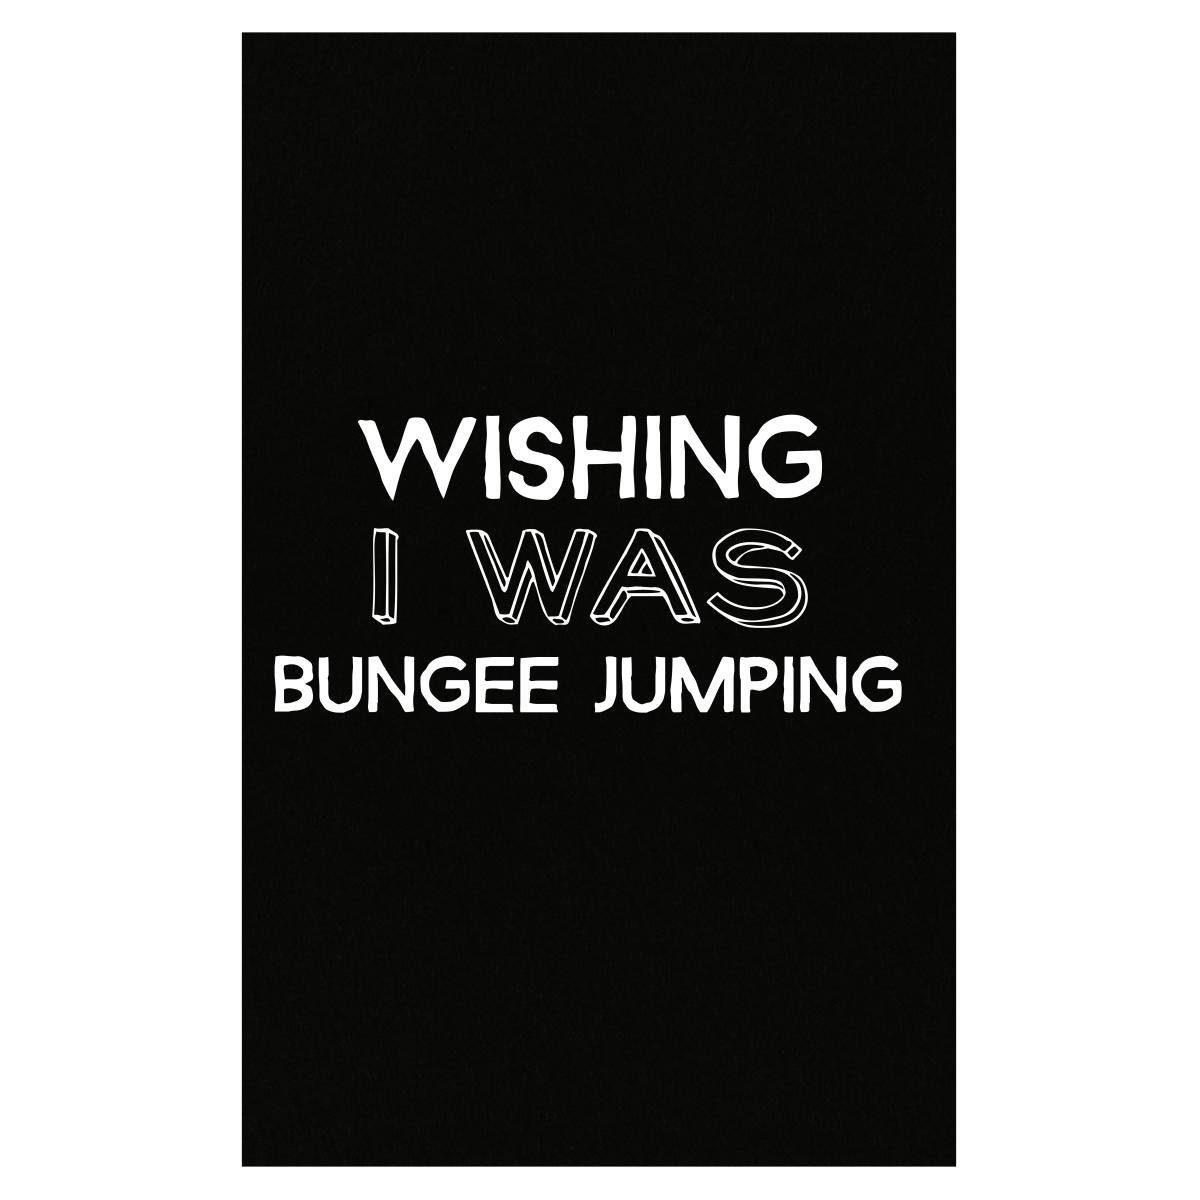 This Gift Rocks ! Wishing I Was Bungee Jumping Cool And Funny Gift For A Bungee Jumping Lover - Poster